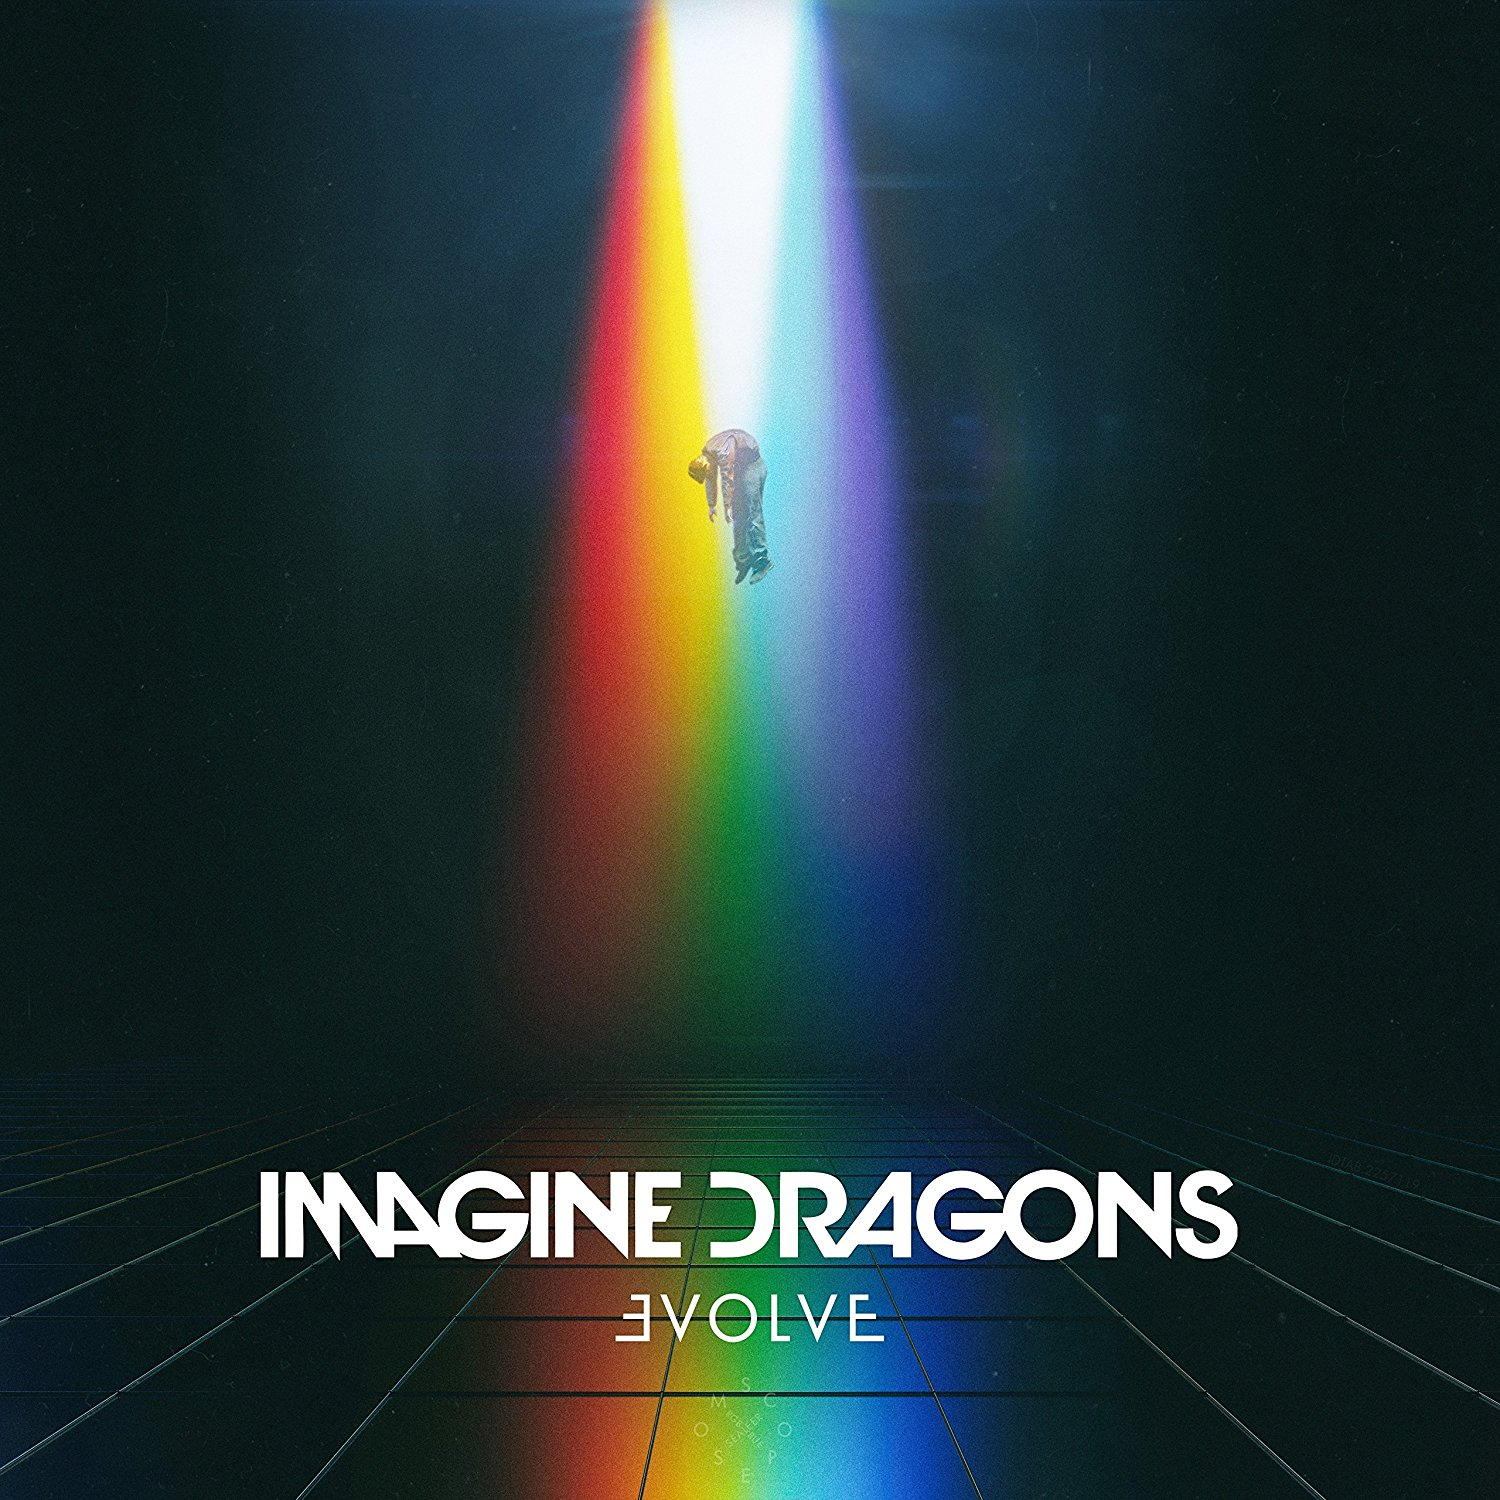 Imagine Dragons, Evolve | Album Review